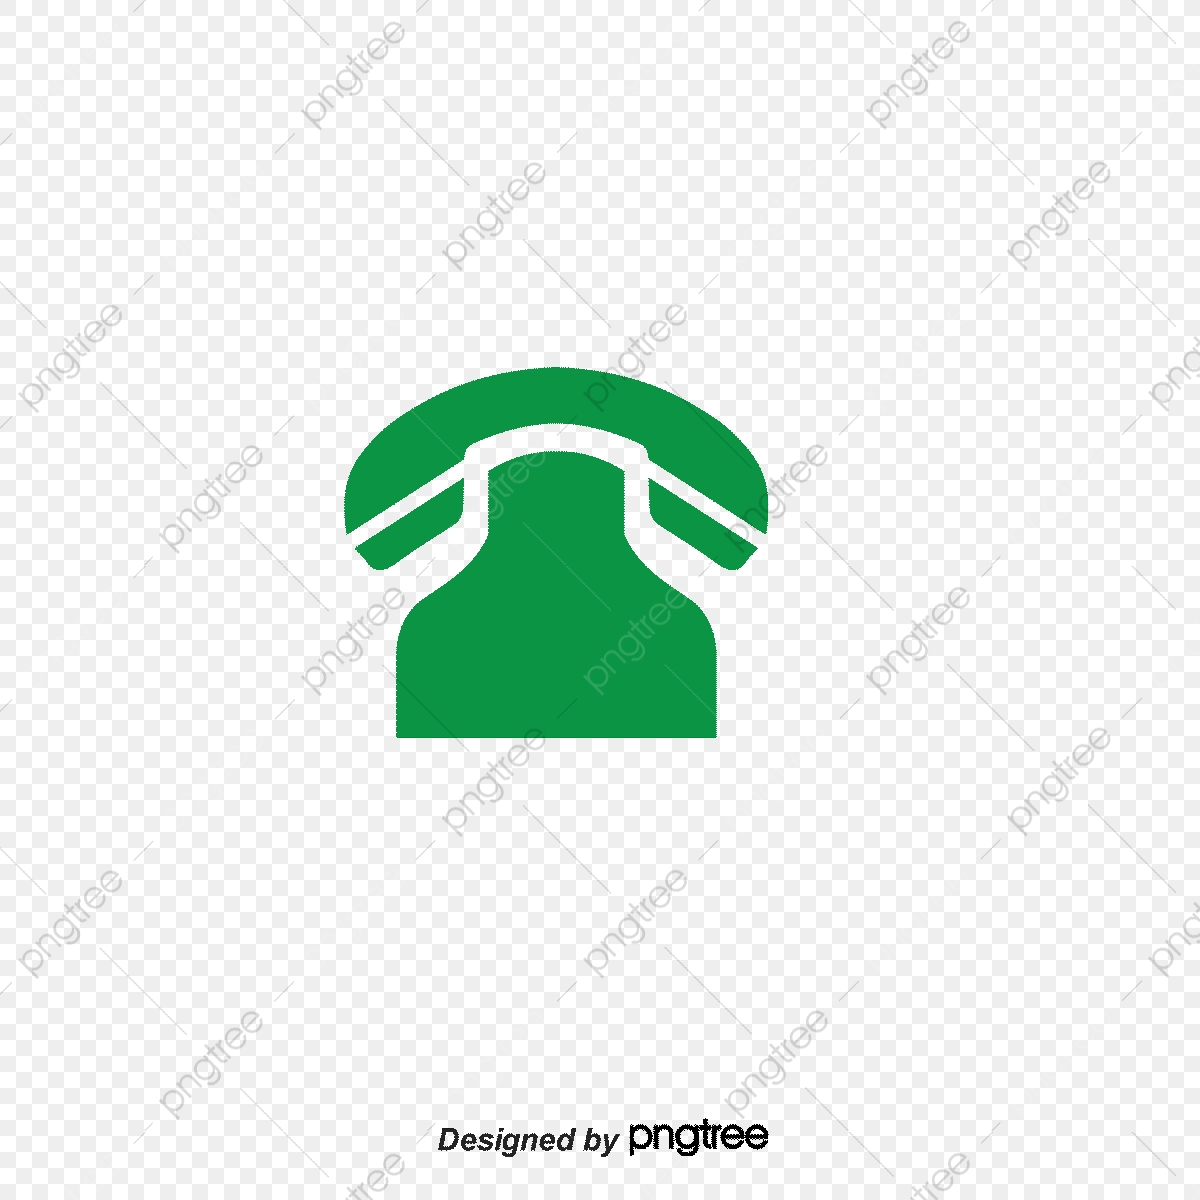 Contact Us Contact Vector Order Telephone PNG and